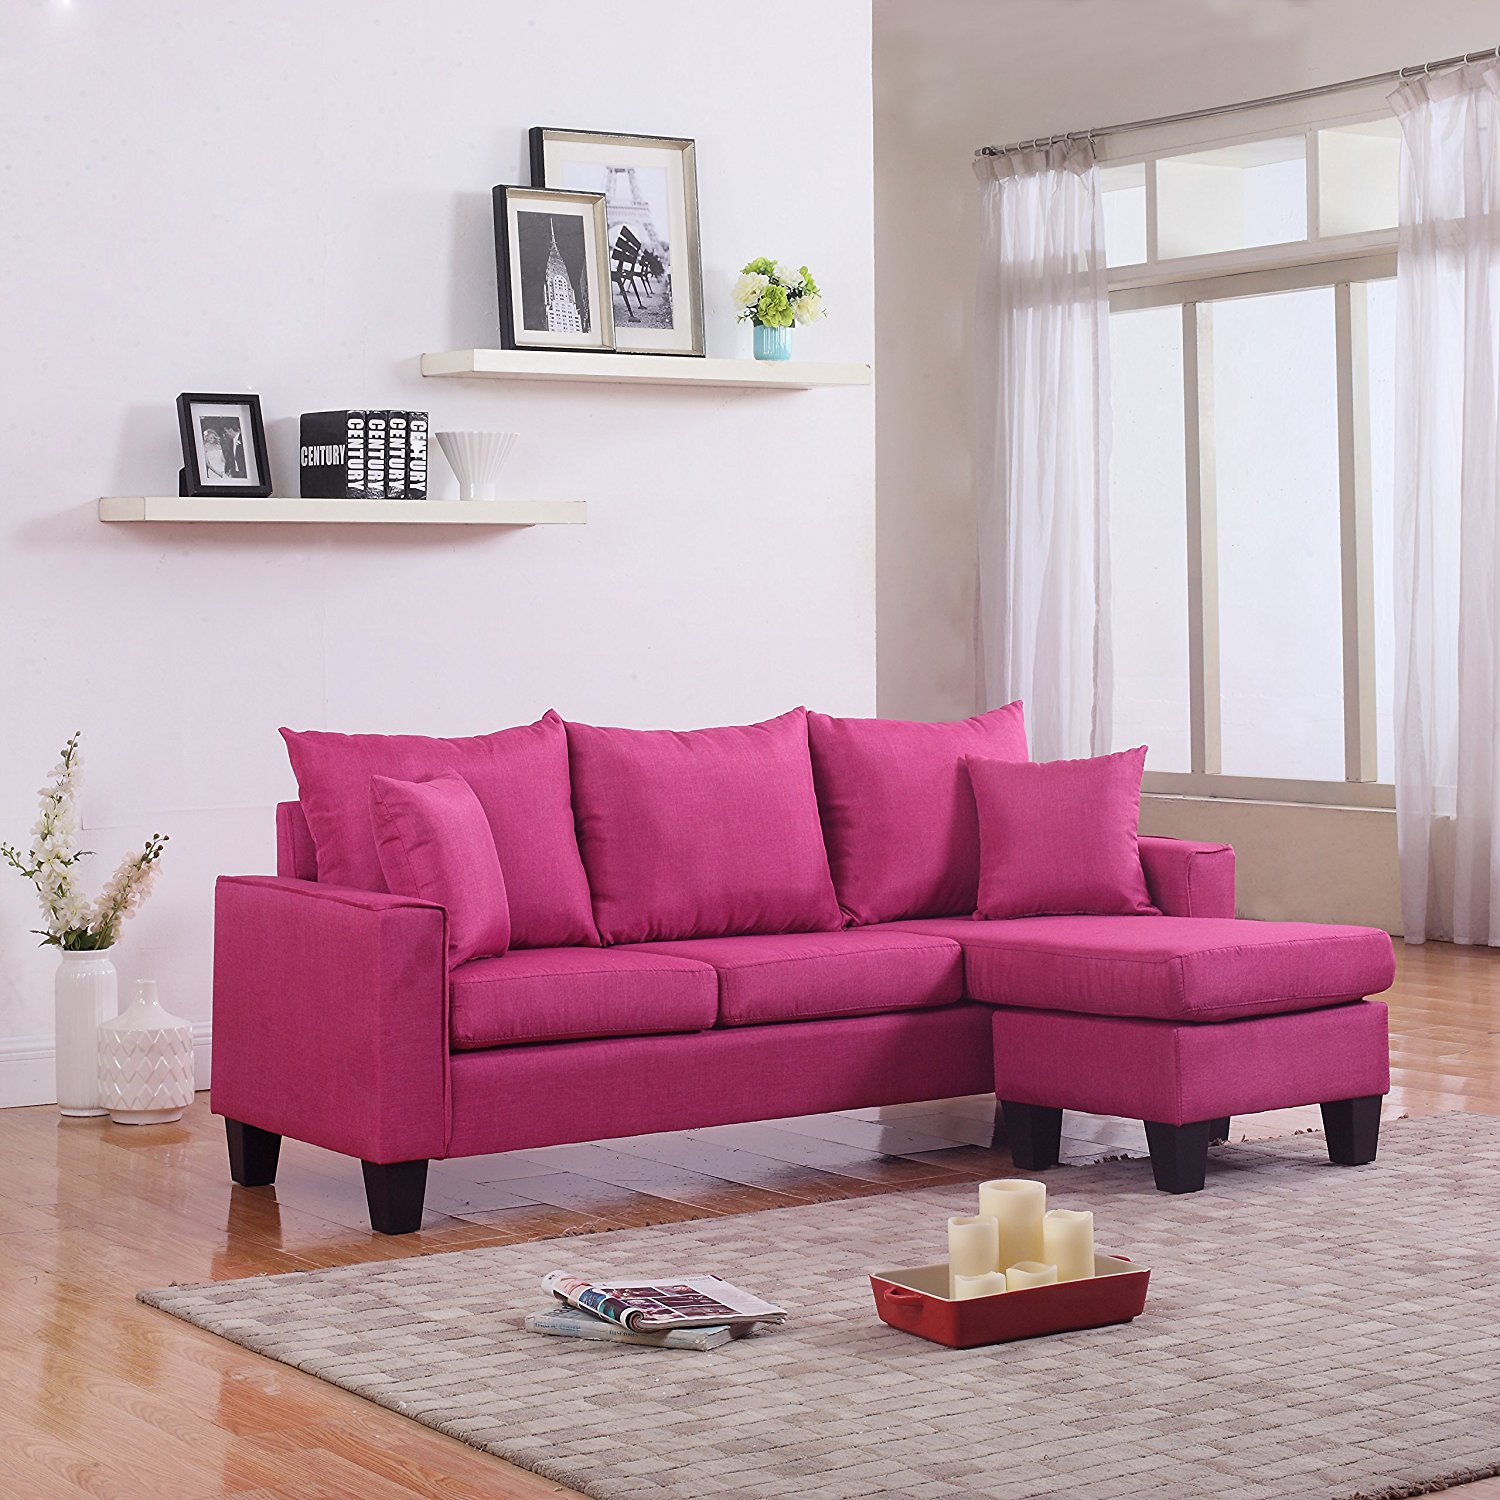 Modern Linen Fabric Sectional Sofa in Rose Red - Divano Roma Furniture